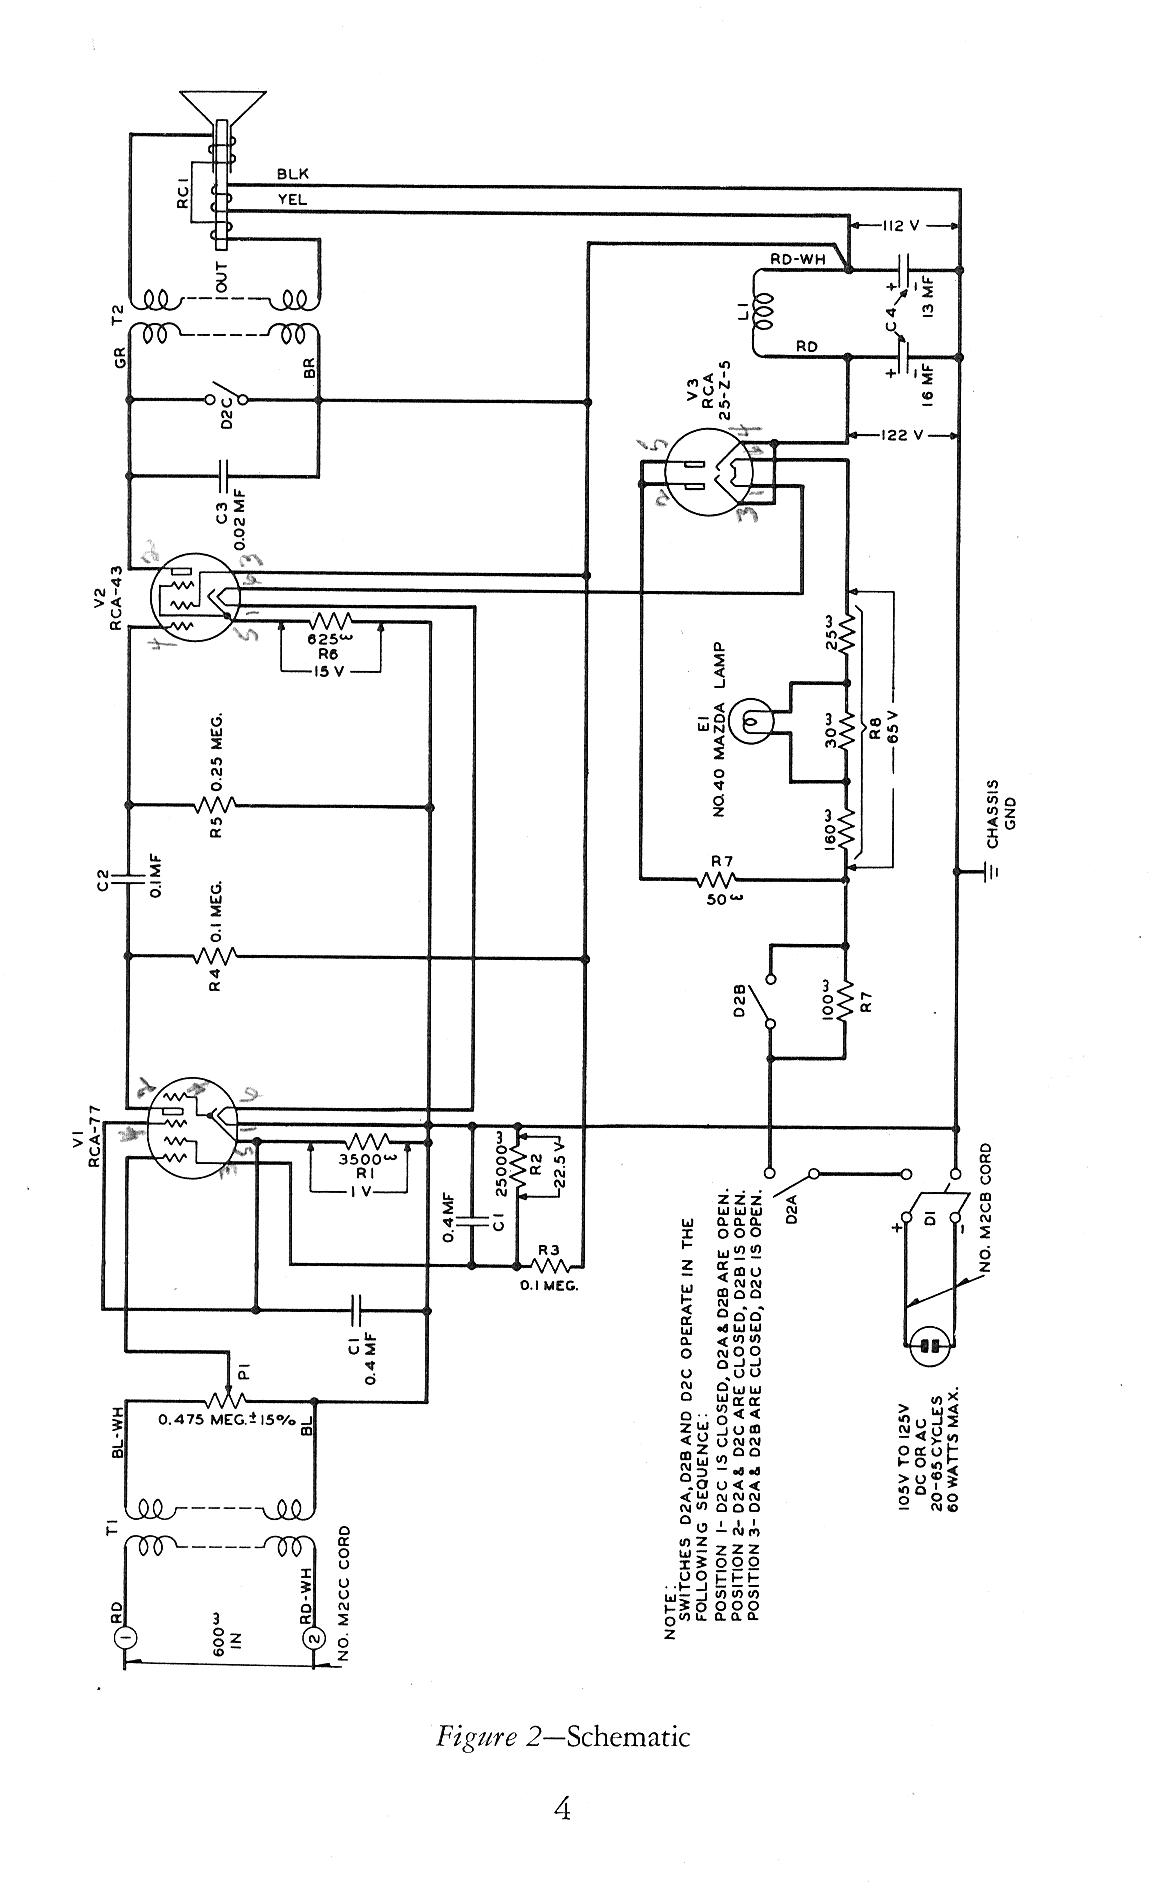 100e_schematic telephone technical references Antique Phone Wiring Diagram at bayanpartner.co